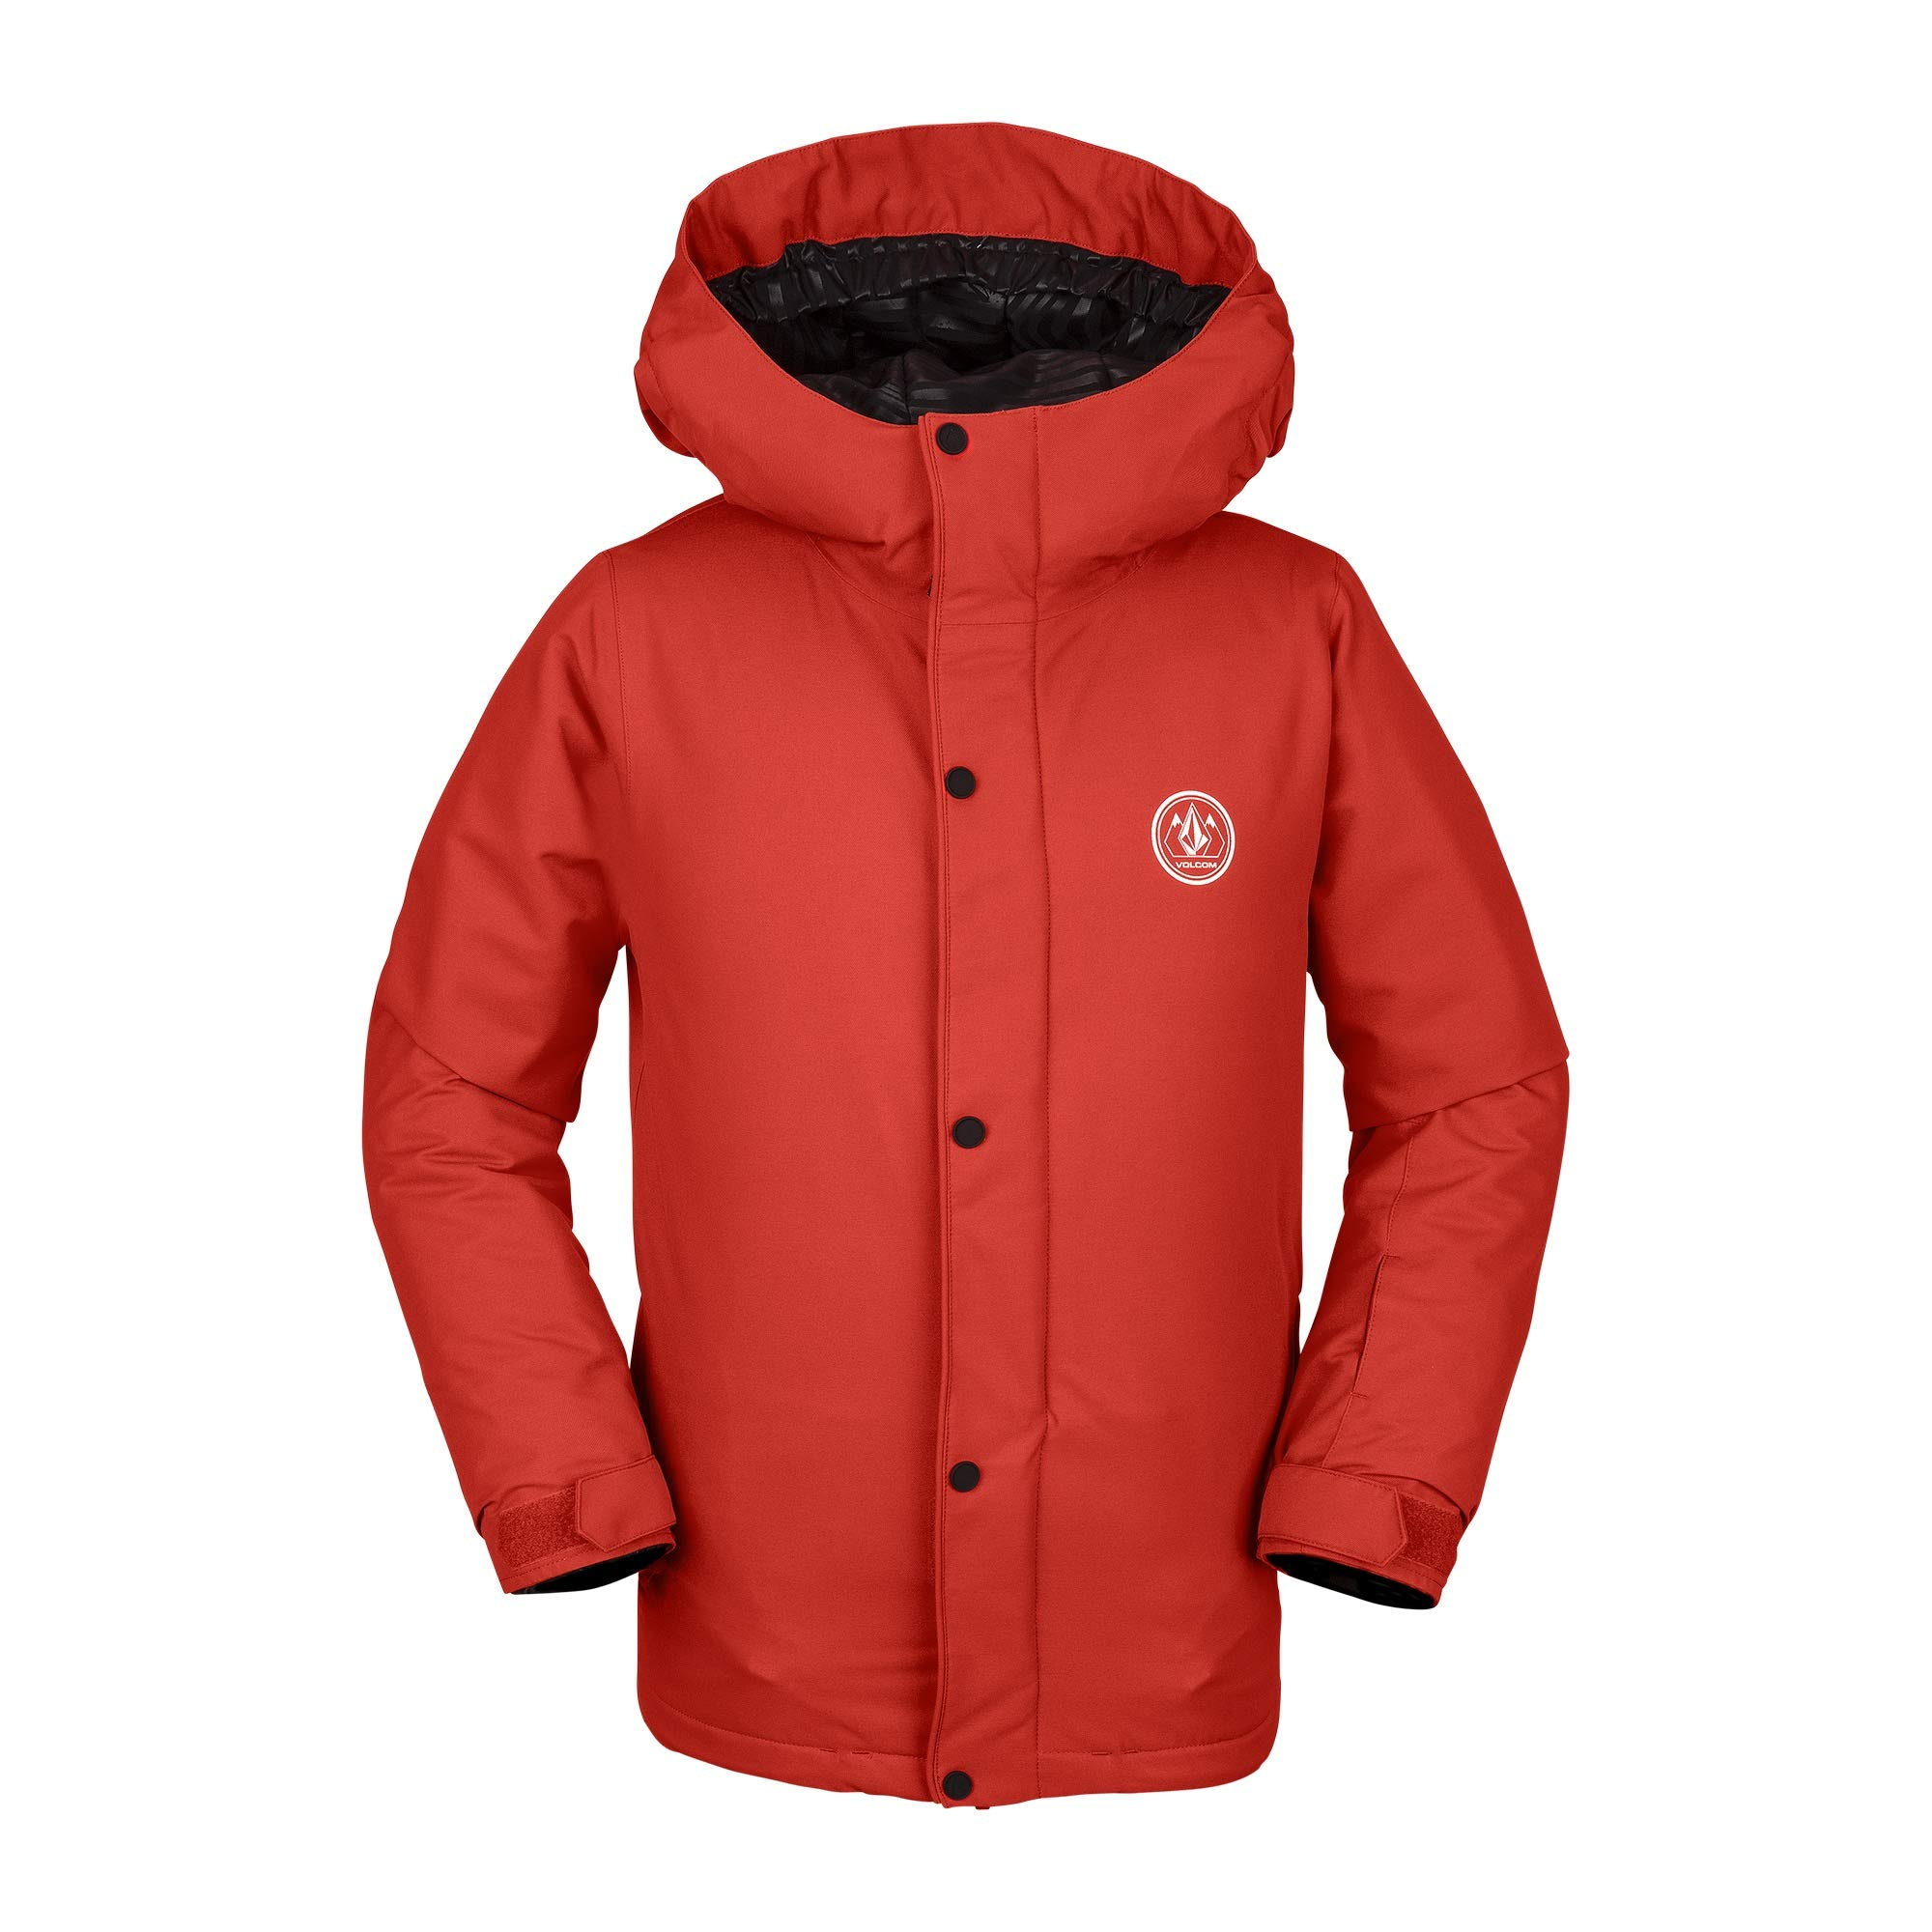 Volcom Boys' Big Ripley Insulated Relaxed Fit Snow Jacket, Orange, Extra Large by Volcom